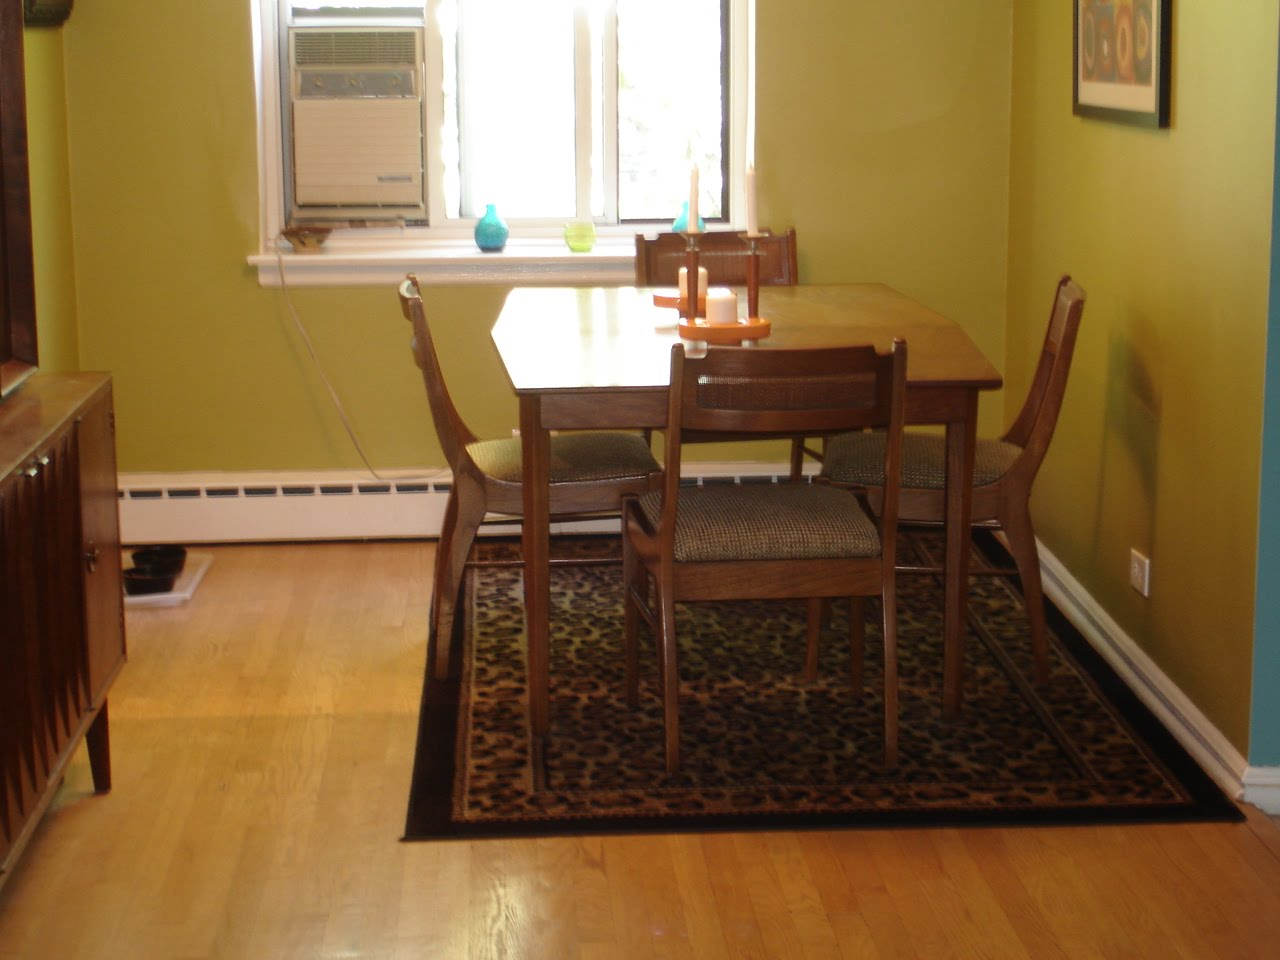 my dining room rug or no rug rugs under kitchen table My dining room rug or no rug